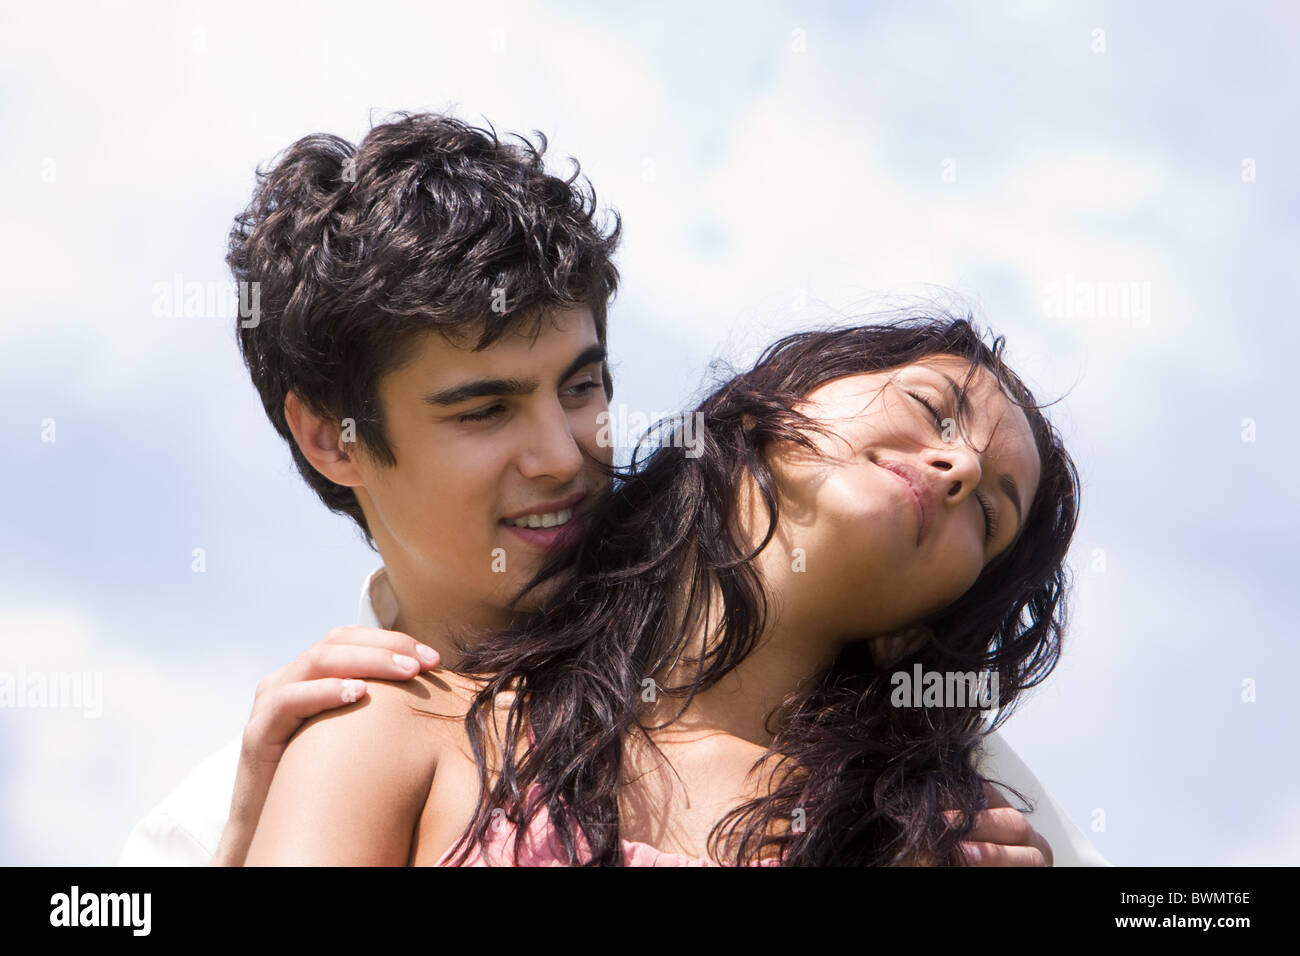 Photo of handsome man embracing tenderly beautiful woman on background of sky - Stock Image